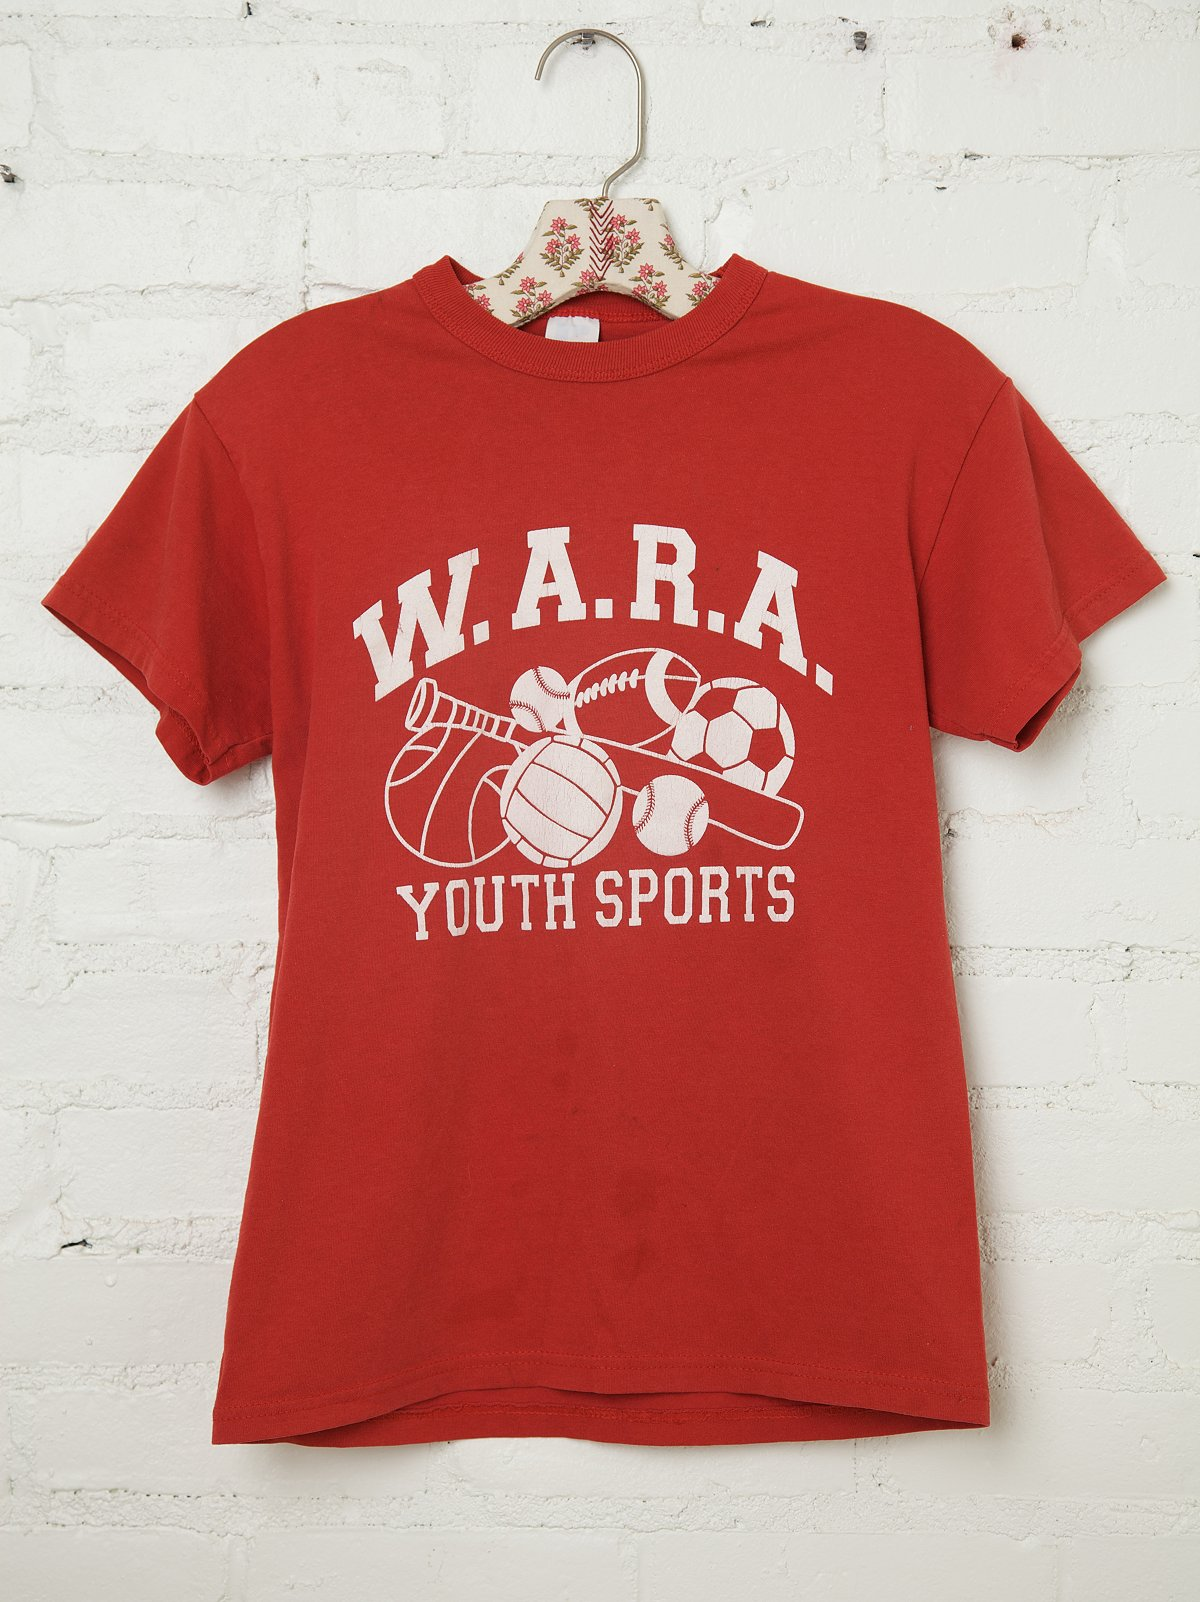 Vintage Youth Sports Tee